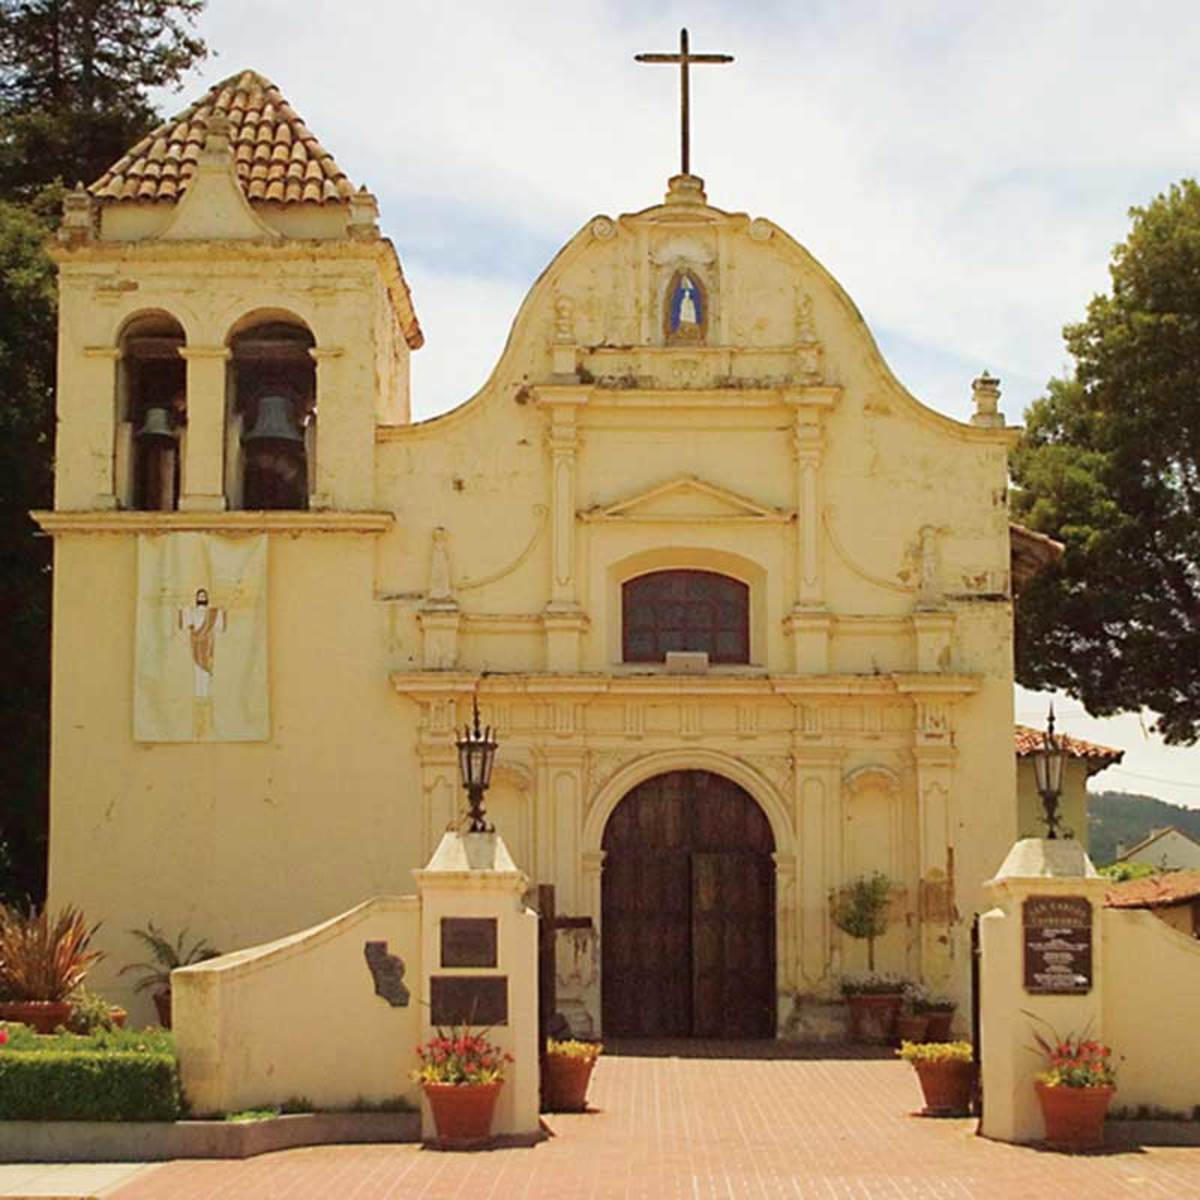 On the Pacific coastline near Monterey; the Spanish Colonial Carmel Mission Basilica.